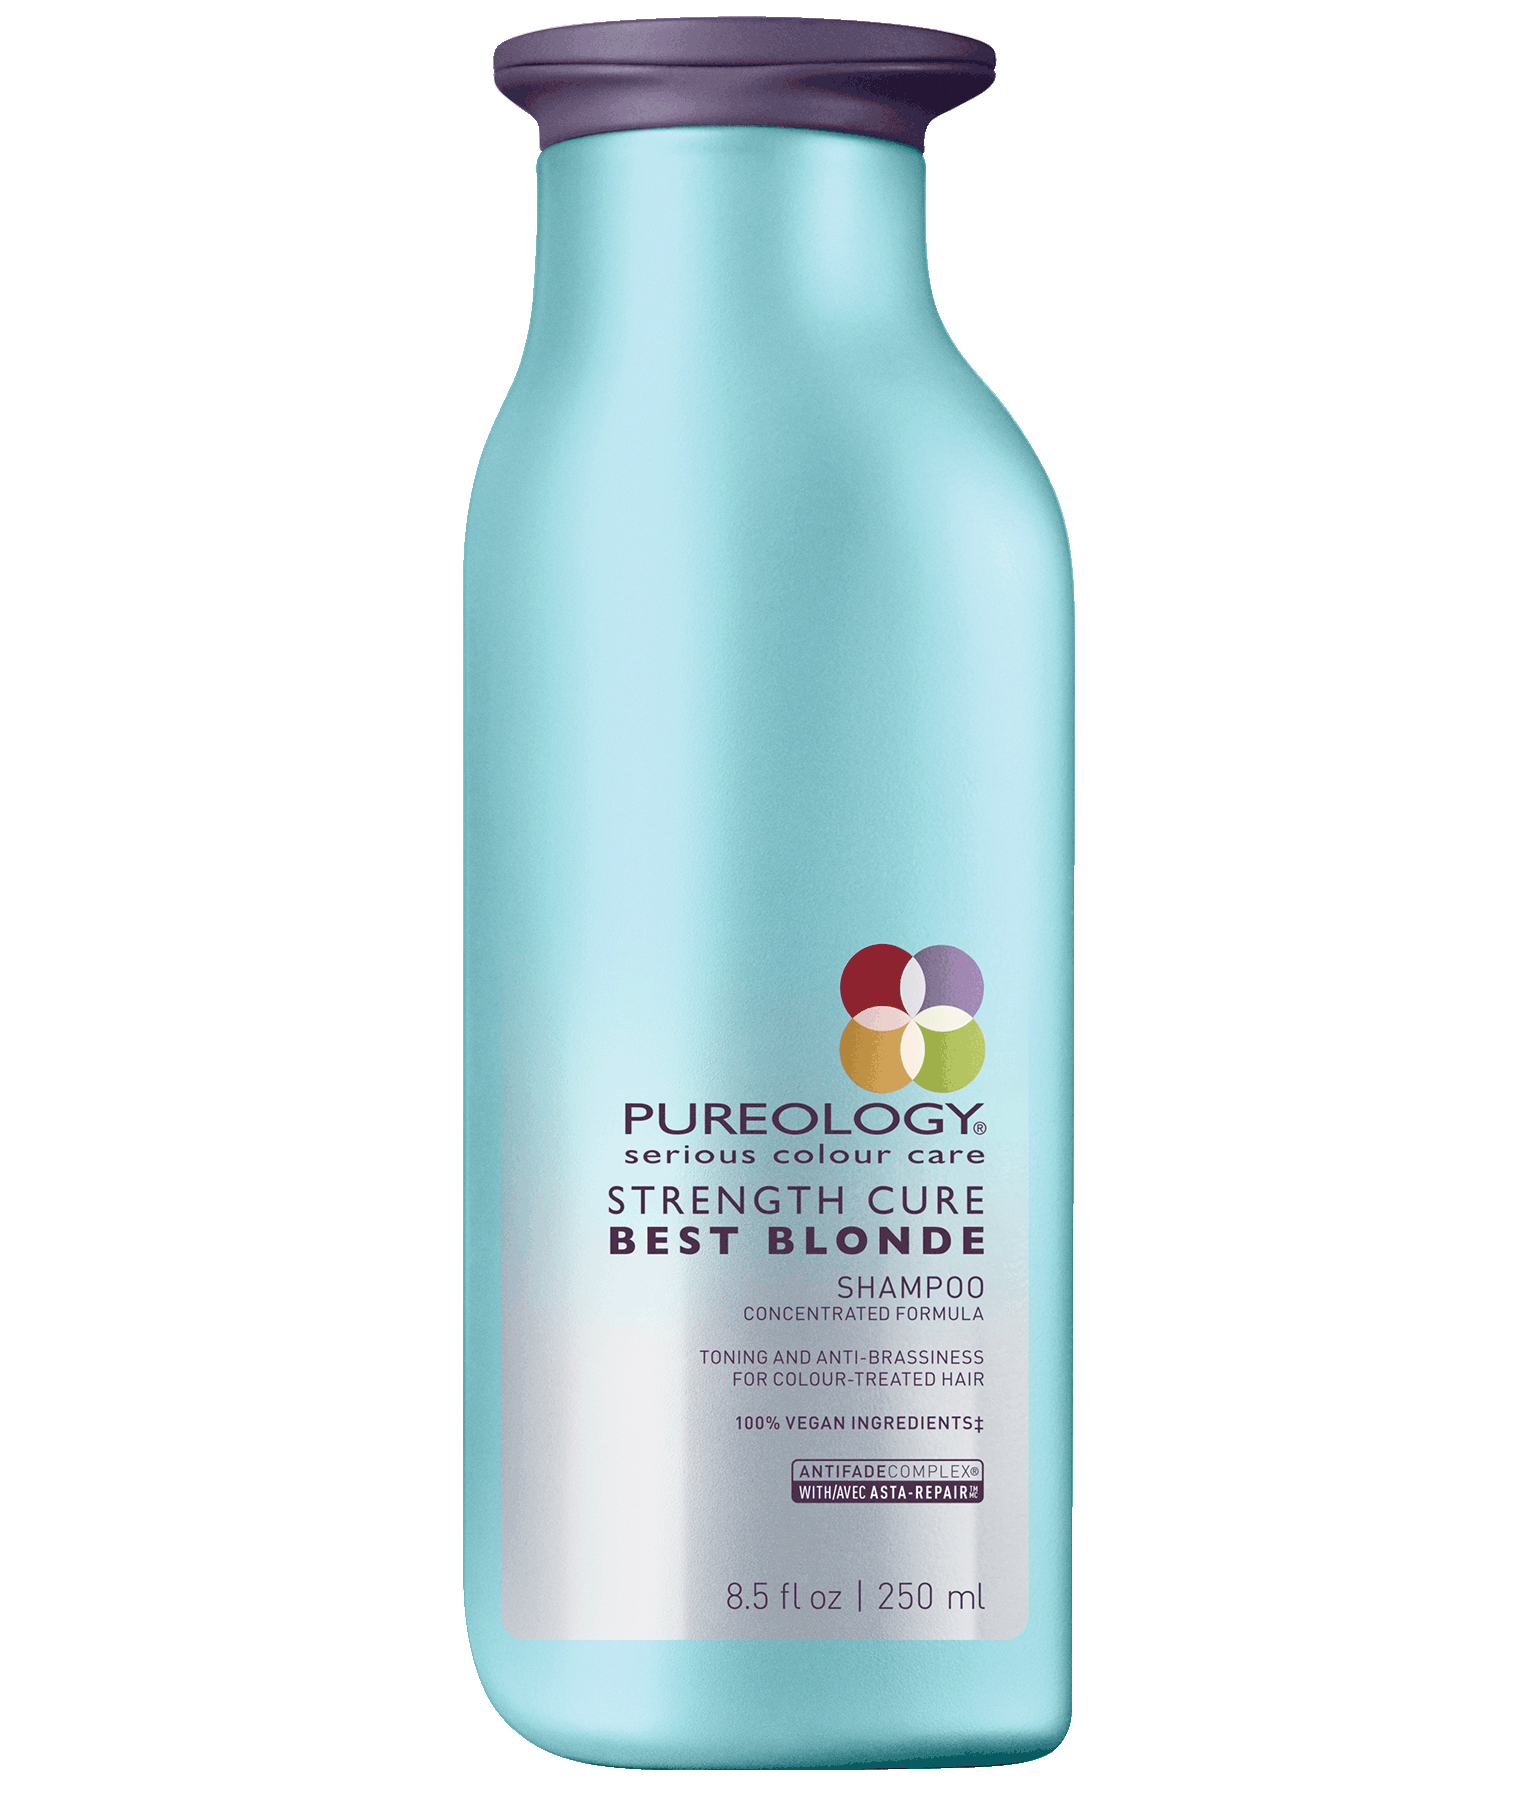 Pureology Strength Cure Best Blonde Shampoo Image Beauty